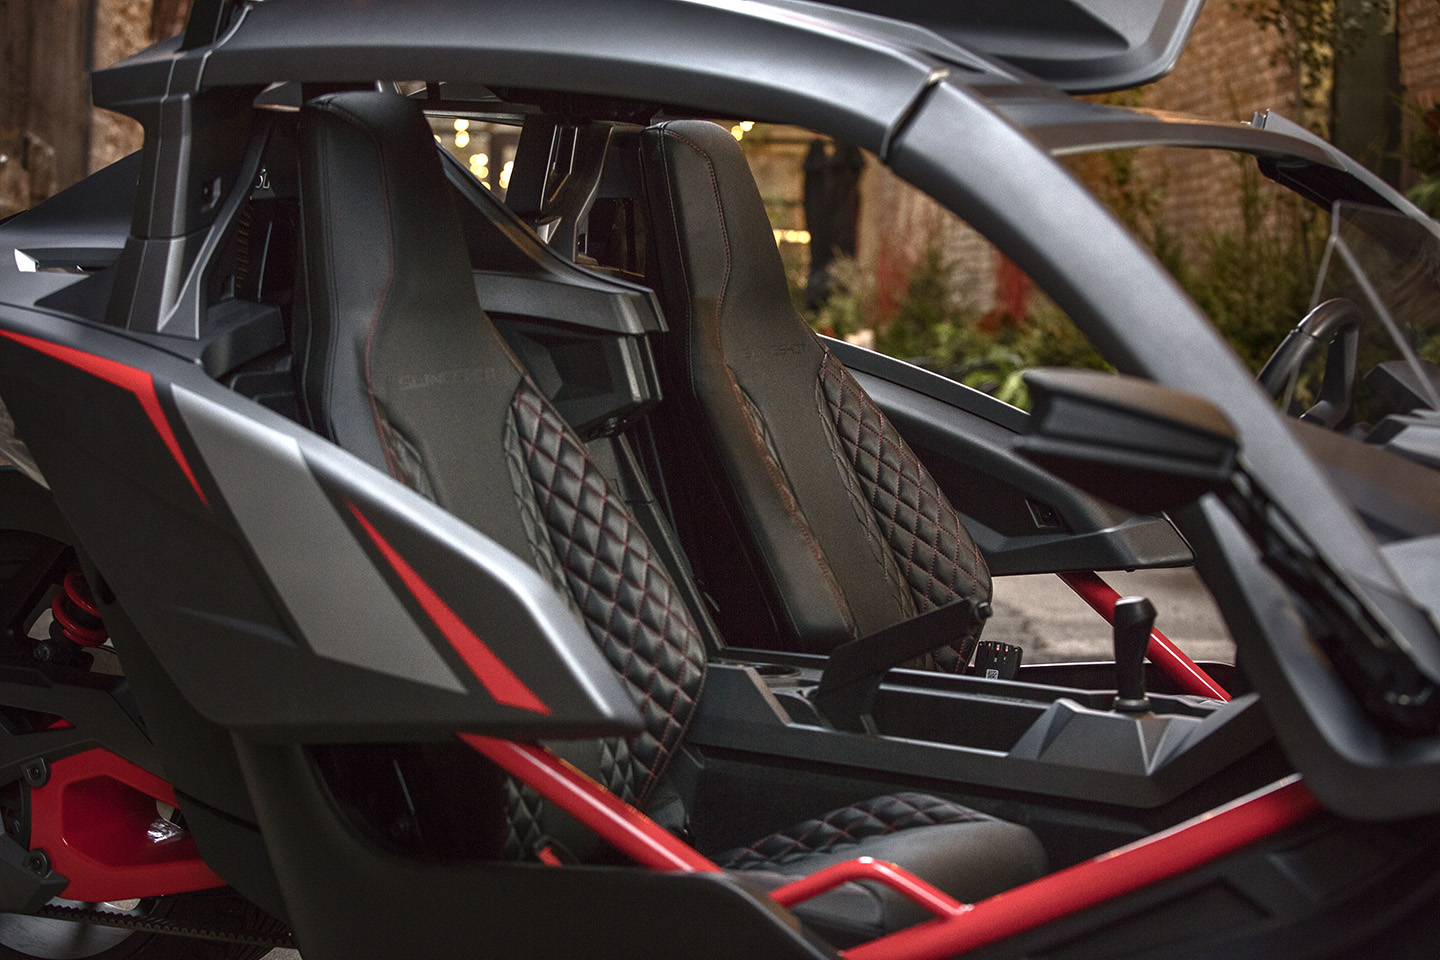 Polaris Slingshot Grand Touring Le Adds Luxury To The